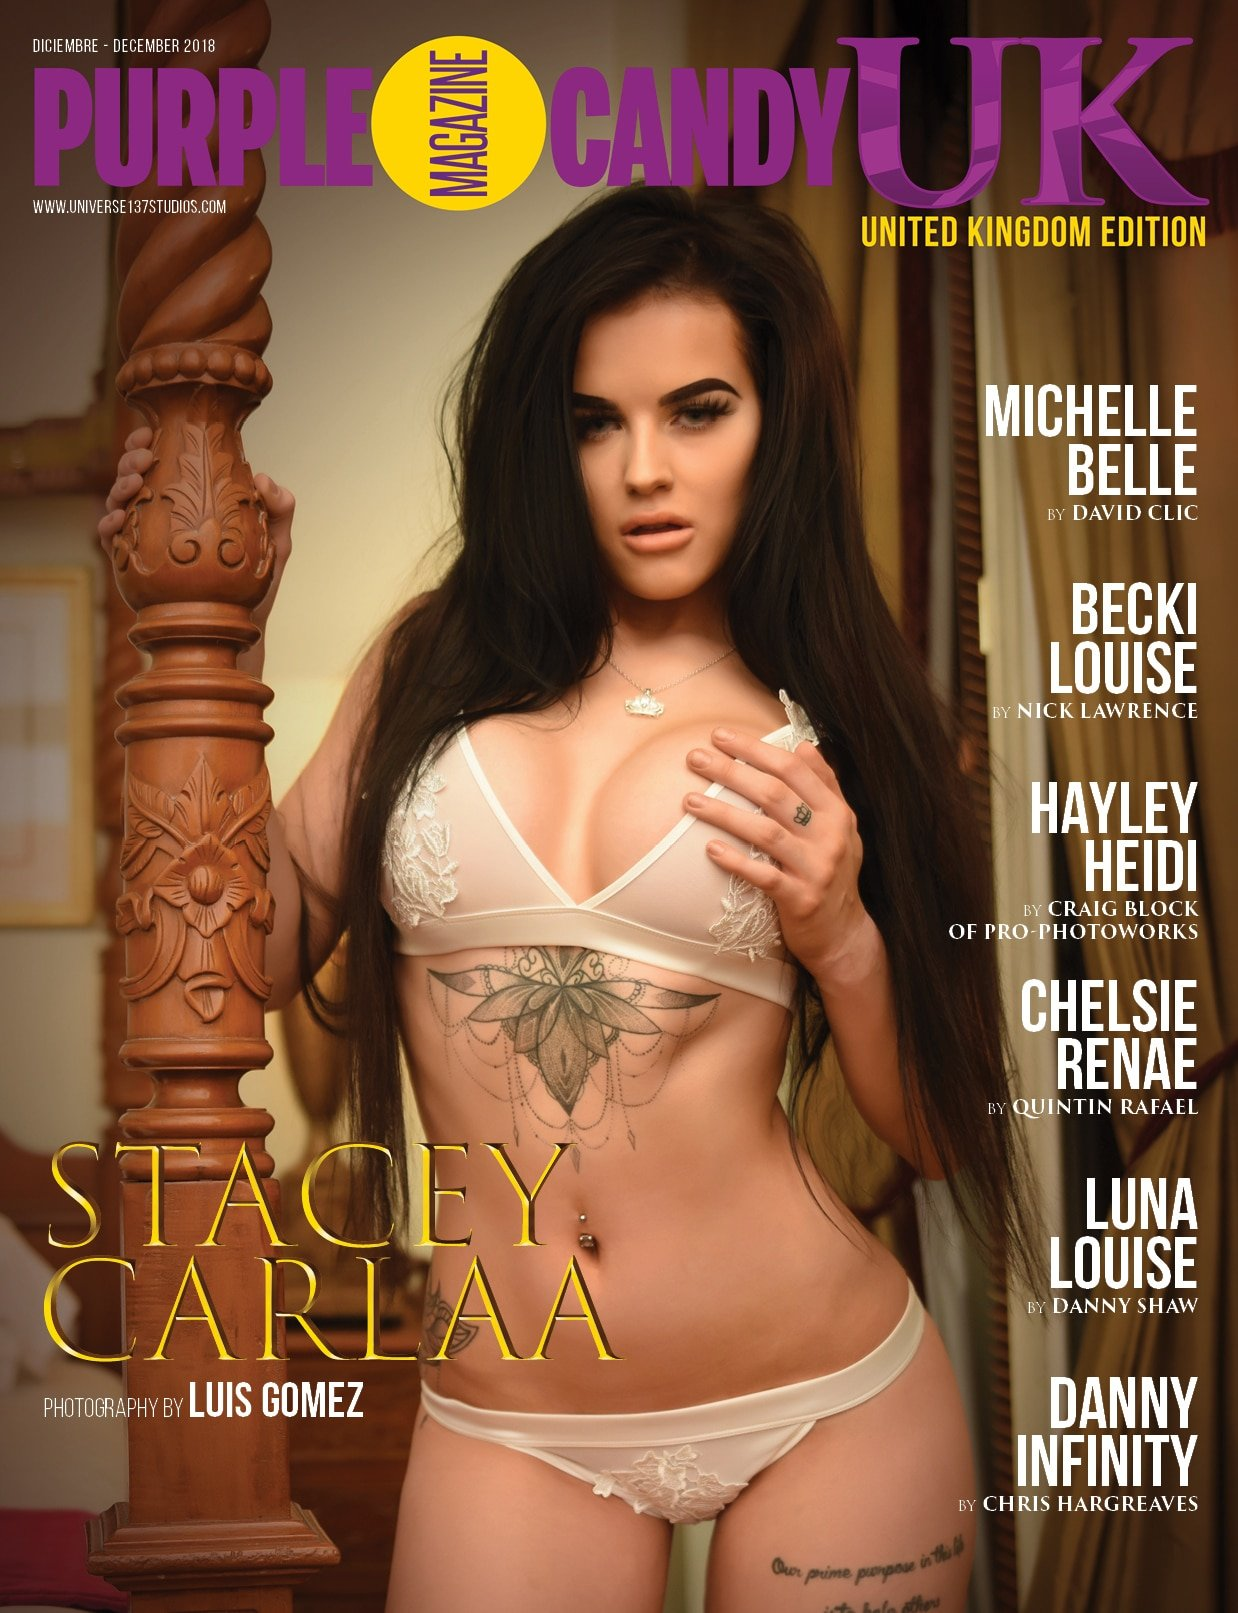 Purple Candy Magazine - UK Special Edition - November 2018 1